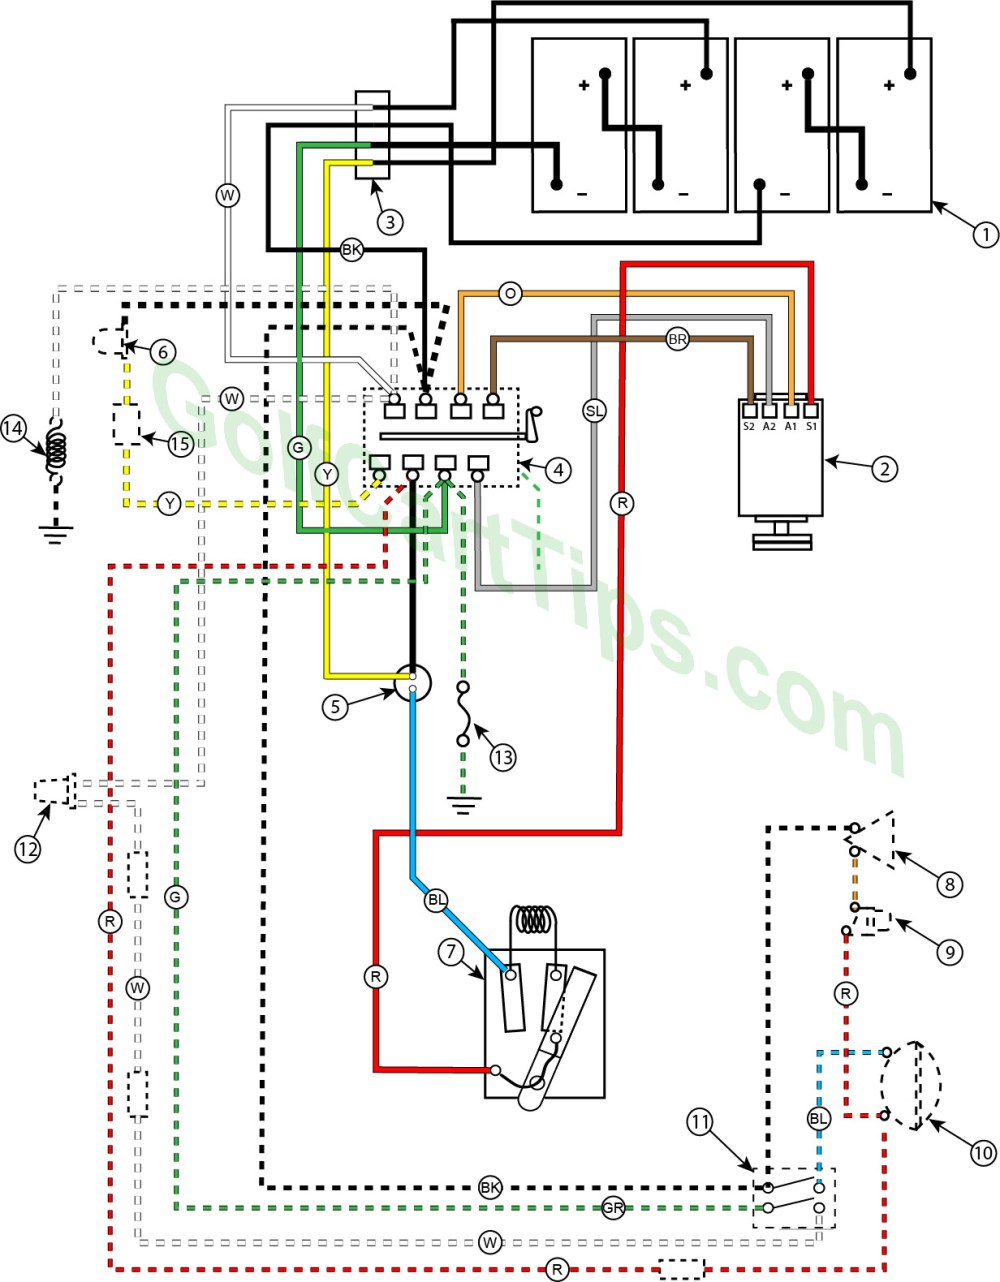 medium resolution of troubleshooting cushman golfsters 1954 58 wiring diagrams re wiring problem on my cushman source cushman electric golf cart